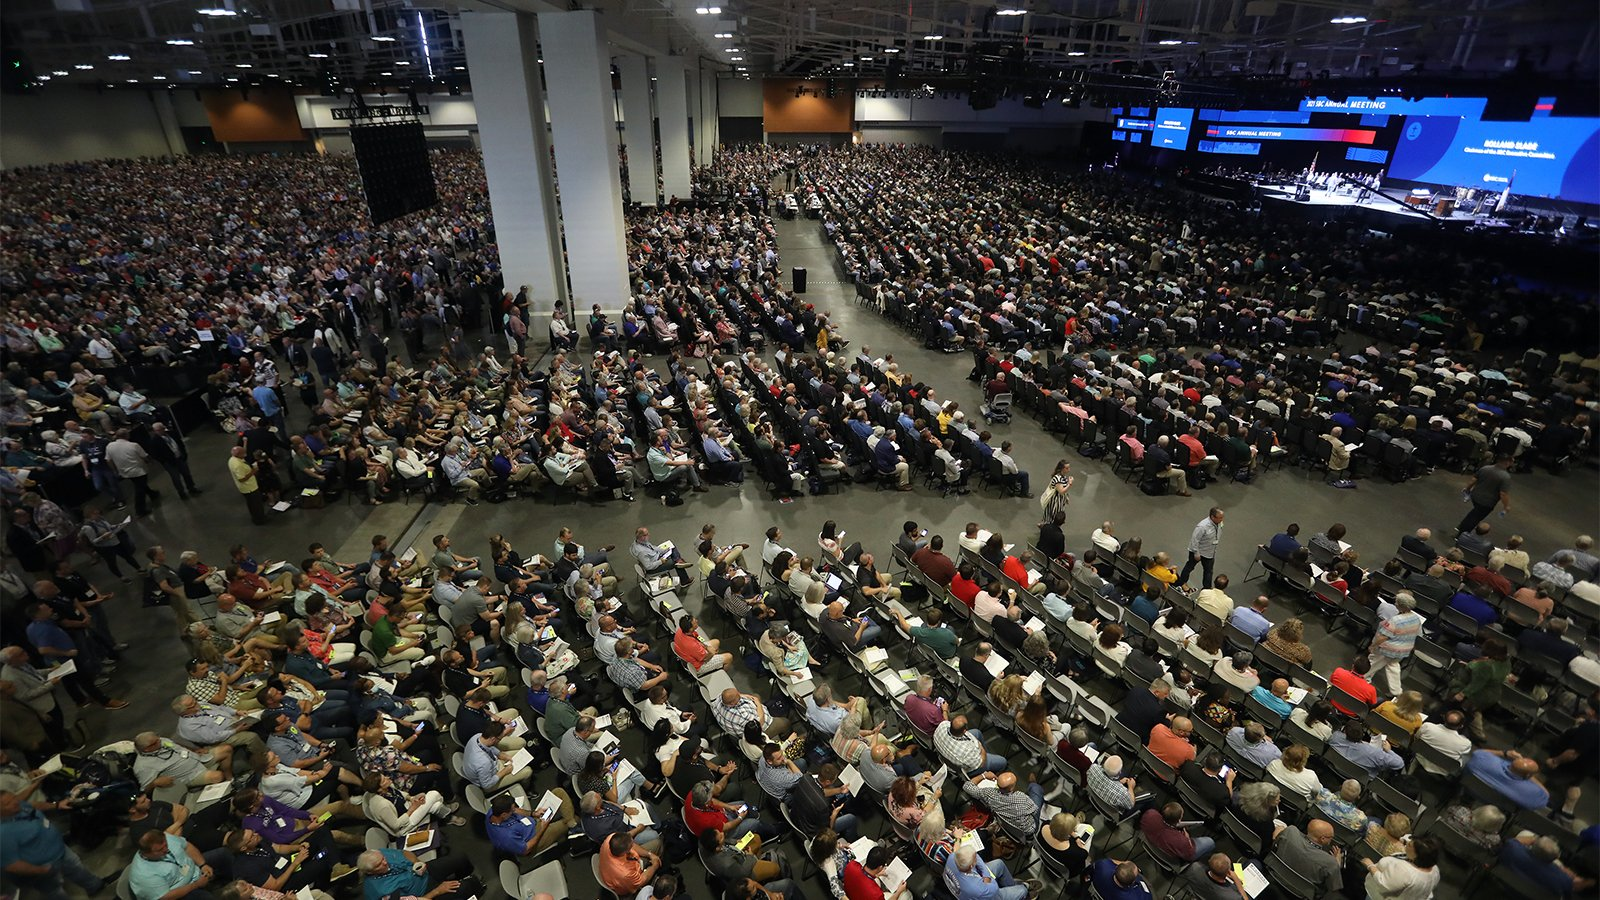 More than 14,000 messengers registered and gathered for the Southern Baptist Convention annual meeting, which opened June 15, 2021, at the Music City Center in Nashville, Tennessee. RNS photo by Kit Doyle